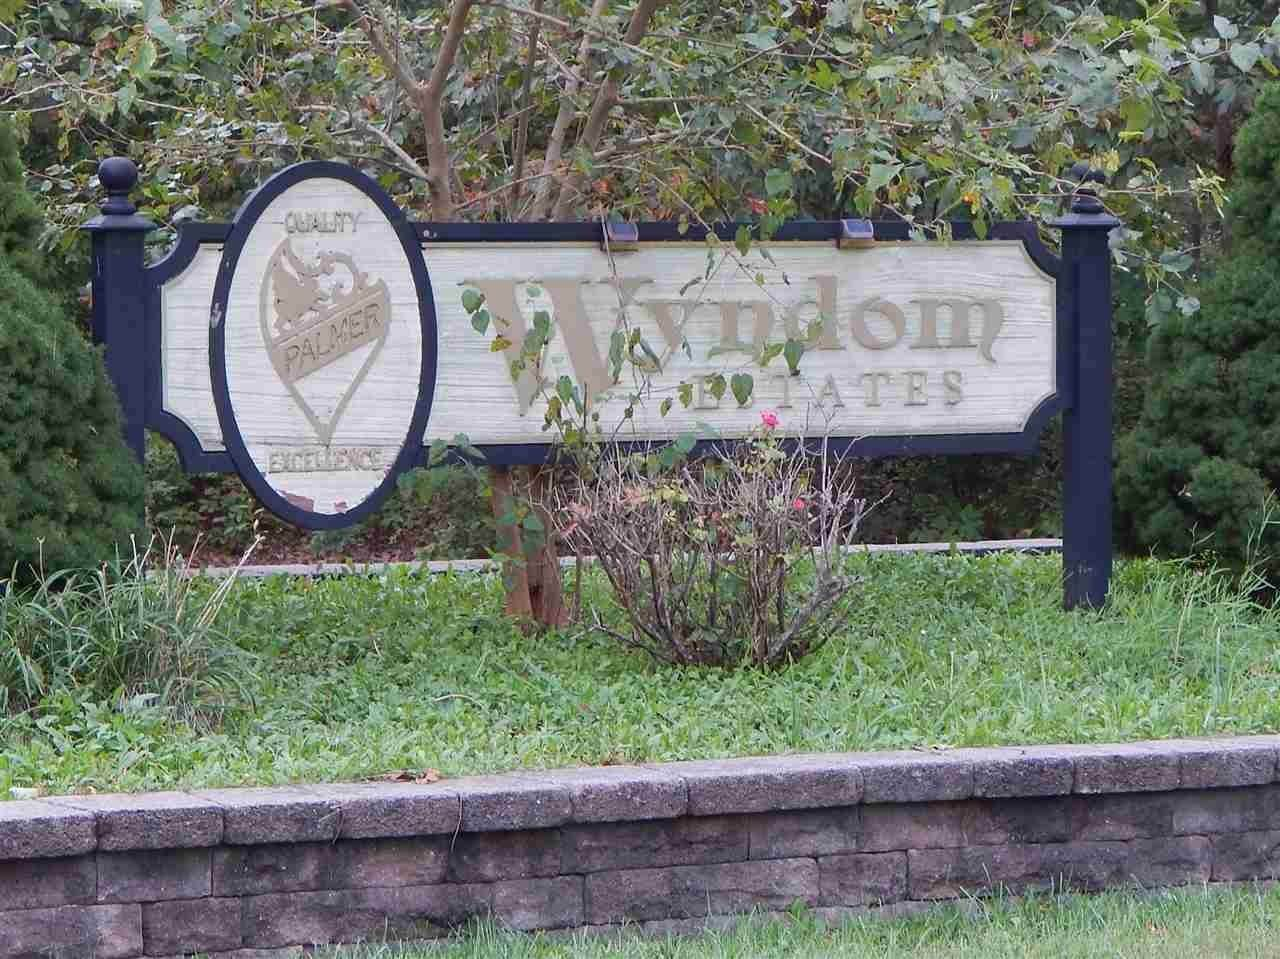 Land for Sale at 2A Wyndom Drive Palermo, New Jersey 08230 United States